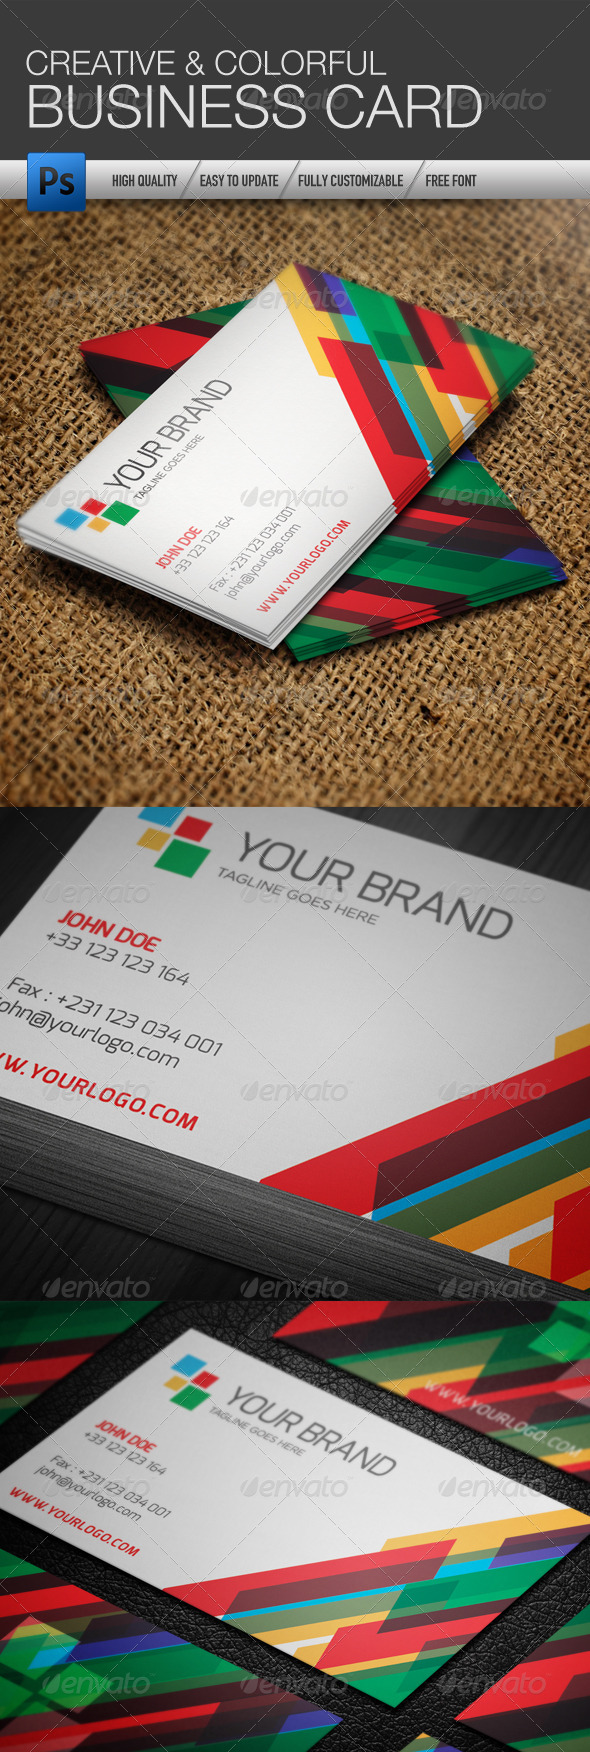 Creative Colorful Business Card Template - Creative Business Cards